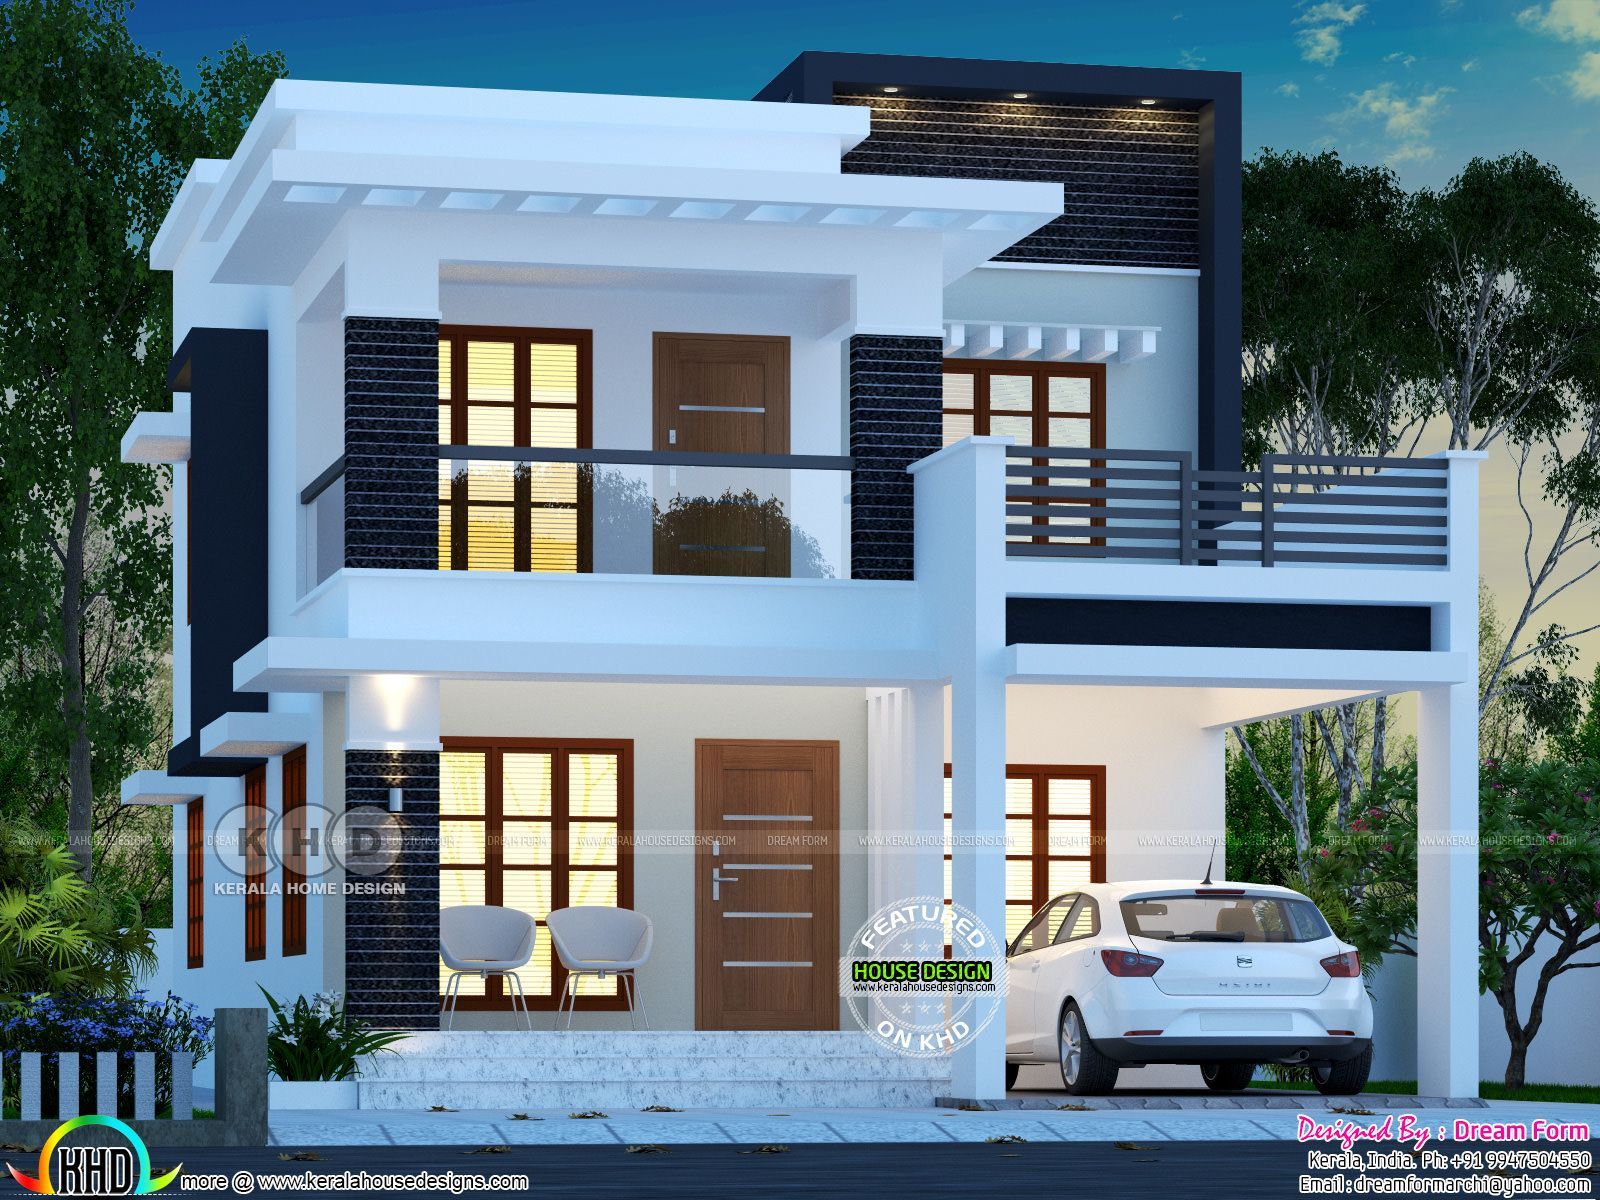 New House Model 1800 Sq Ft India Google Search Kerala House Design 2 Storey House Design House Design Pictures